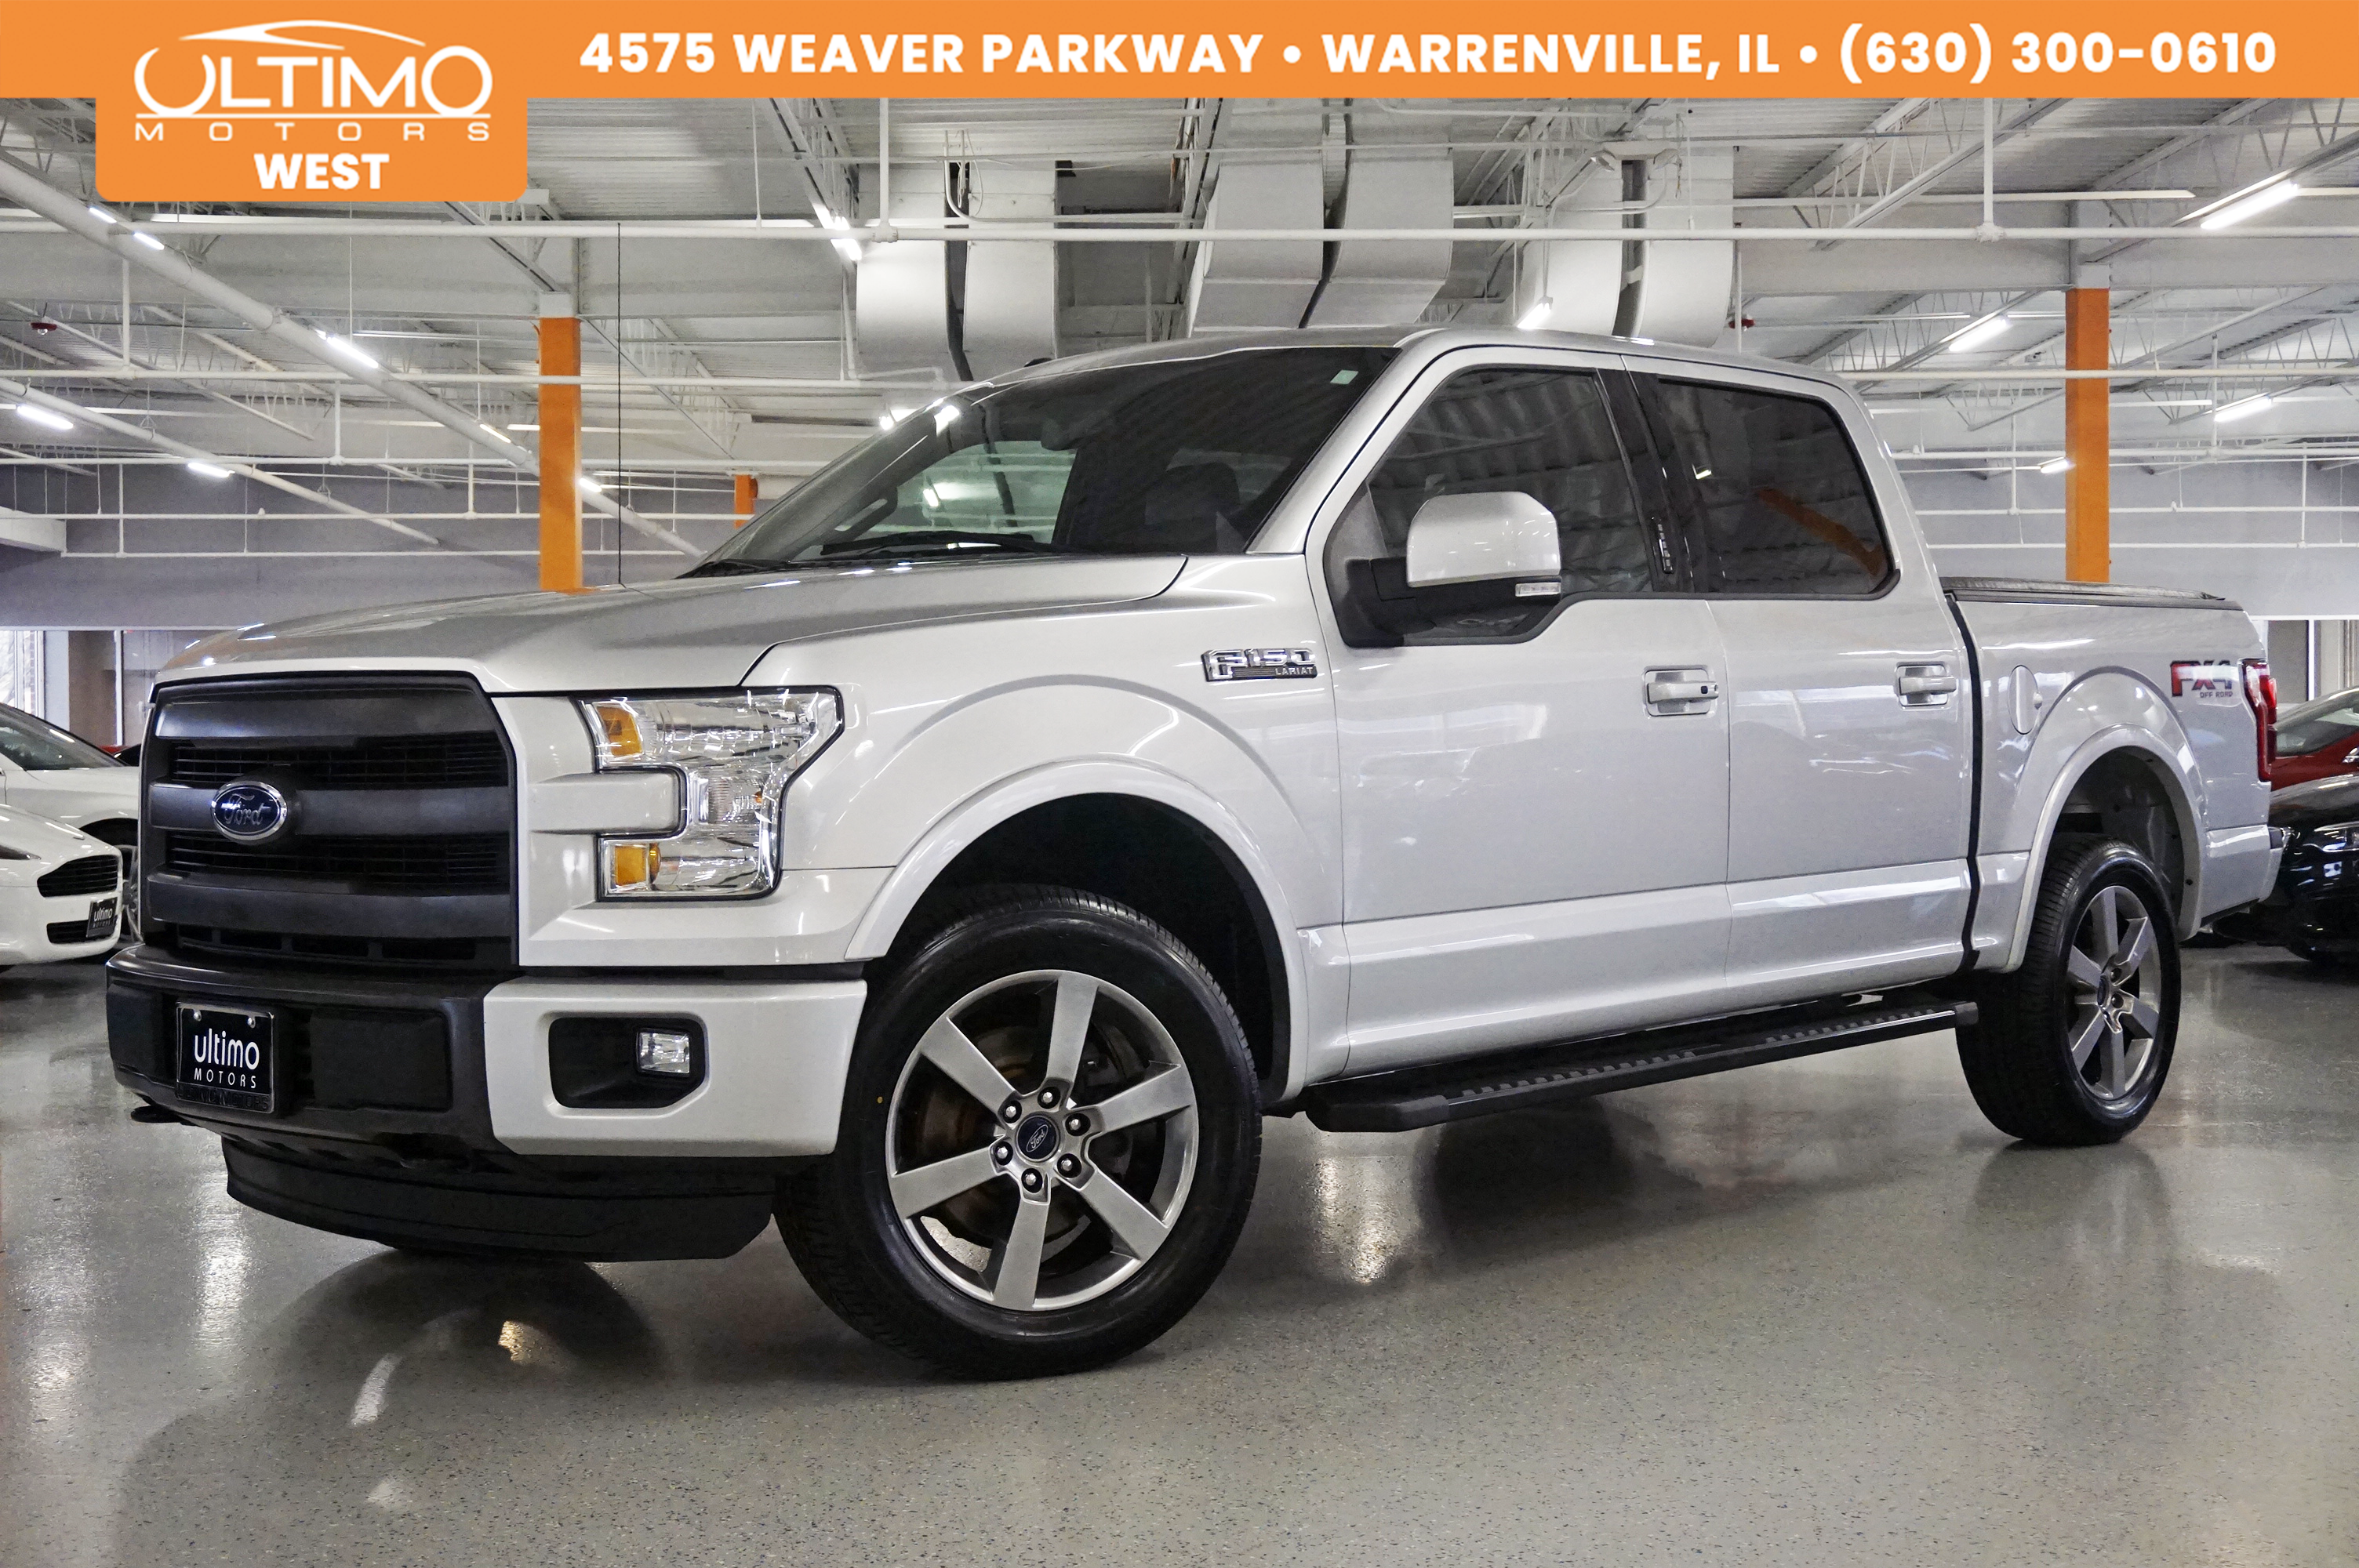 Pre-Owned 2015 Ford F-150 Lariat Nav, Rear Camera, Pano Roof, Blind Spot MSRP $53,425.00